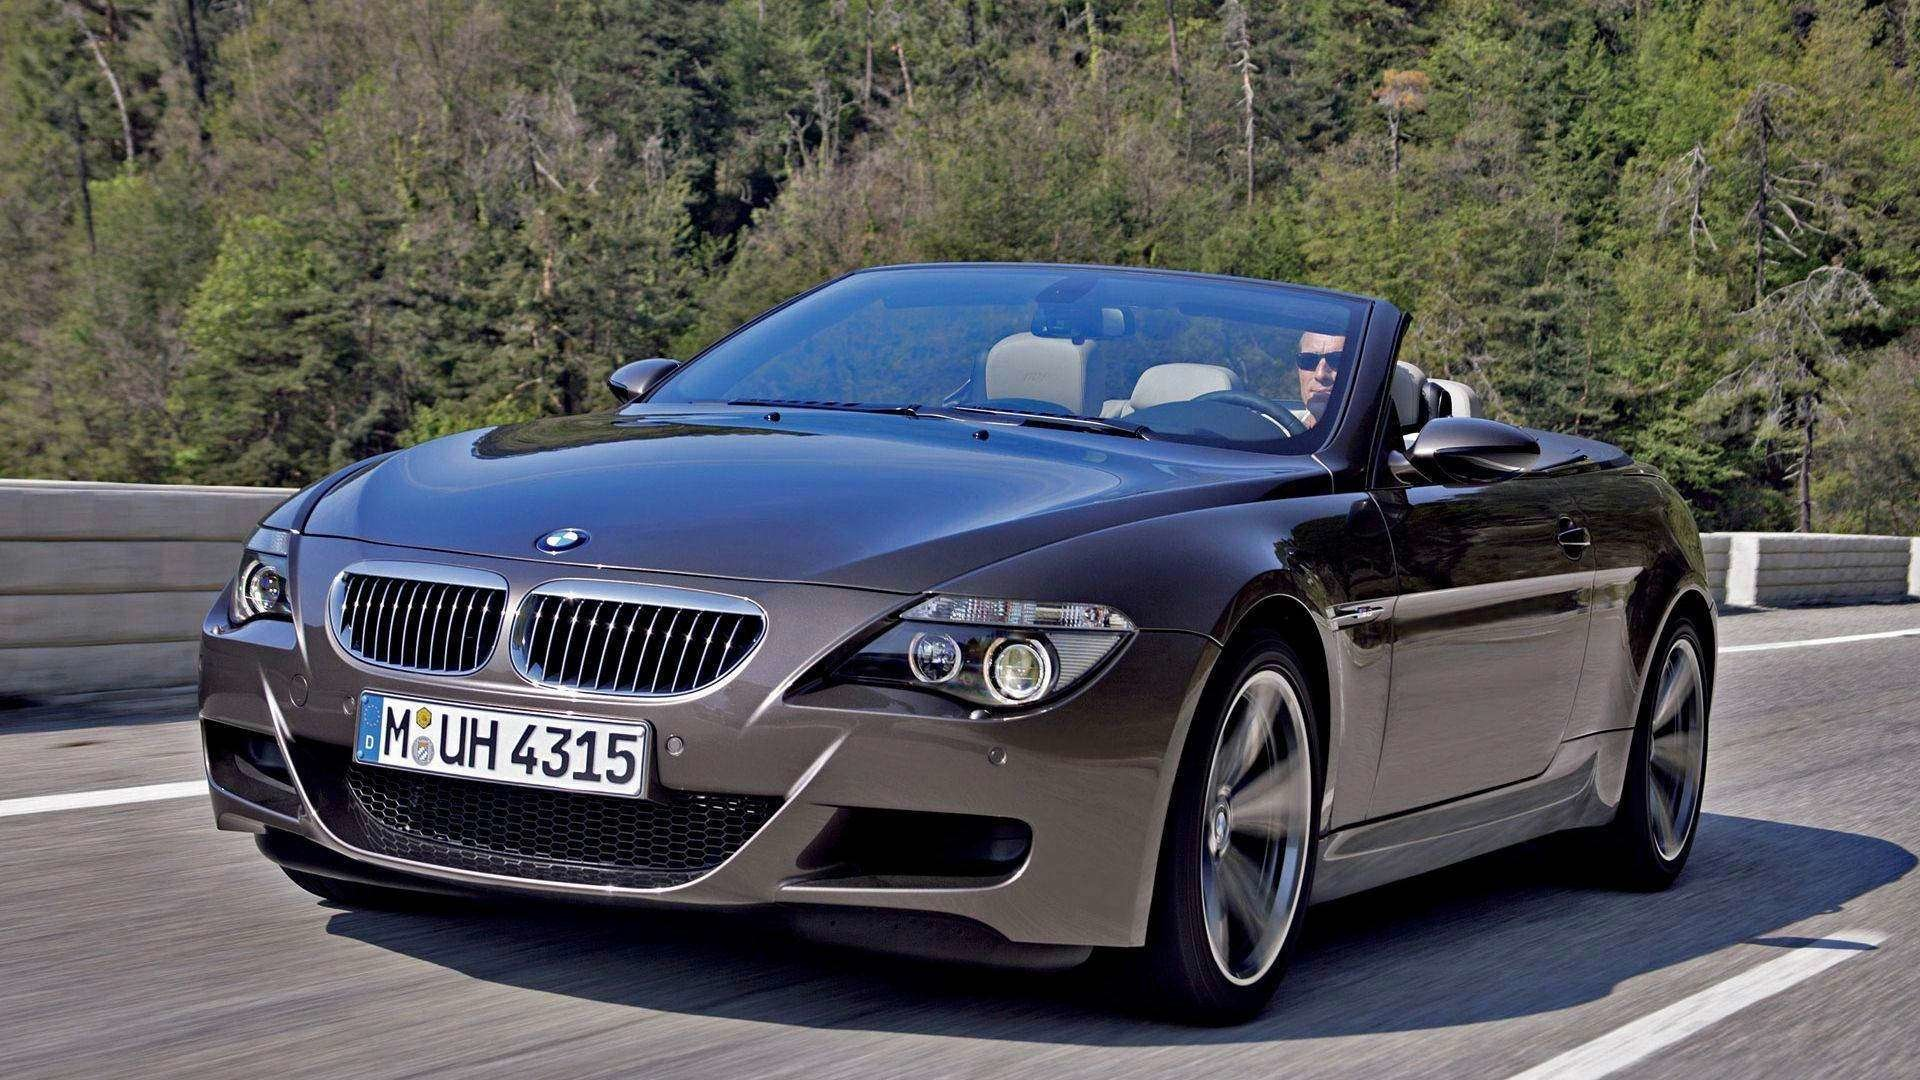 New Wallpaper Bmw Cars Hd Wallpapers On This Month